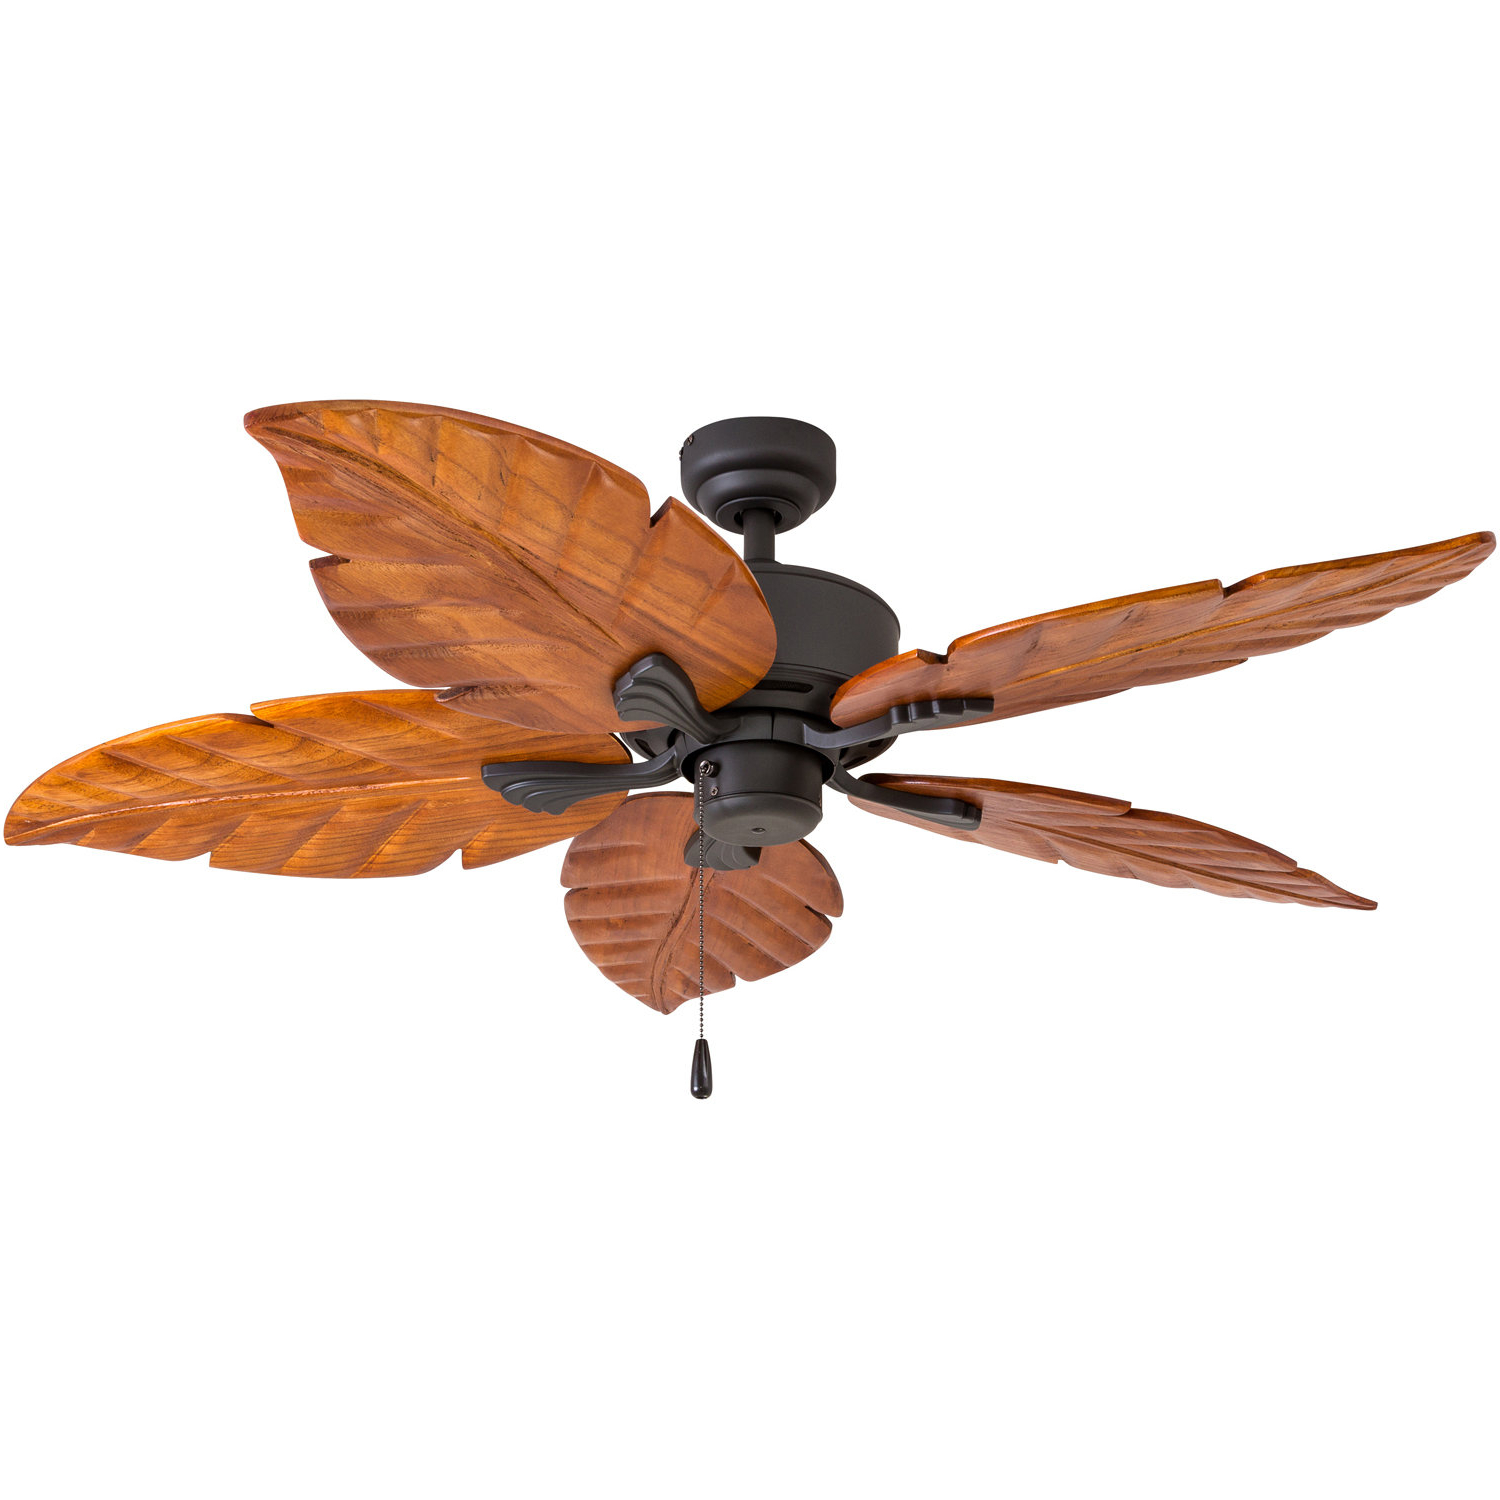 "Best And Newest Details About Bayou Breeze 52"" Kalista Indoor 5 Blade Ceiling Fan With Remote Regarding Kalista 5 Blade Ceiling Fans (View 4 of 20)"